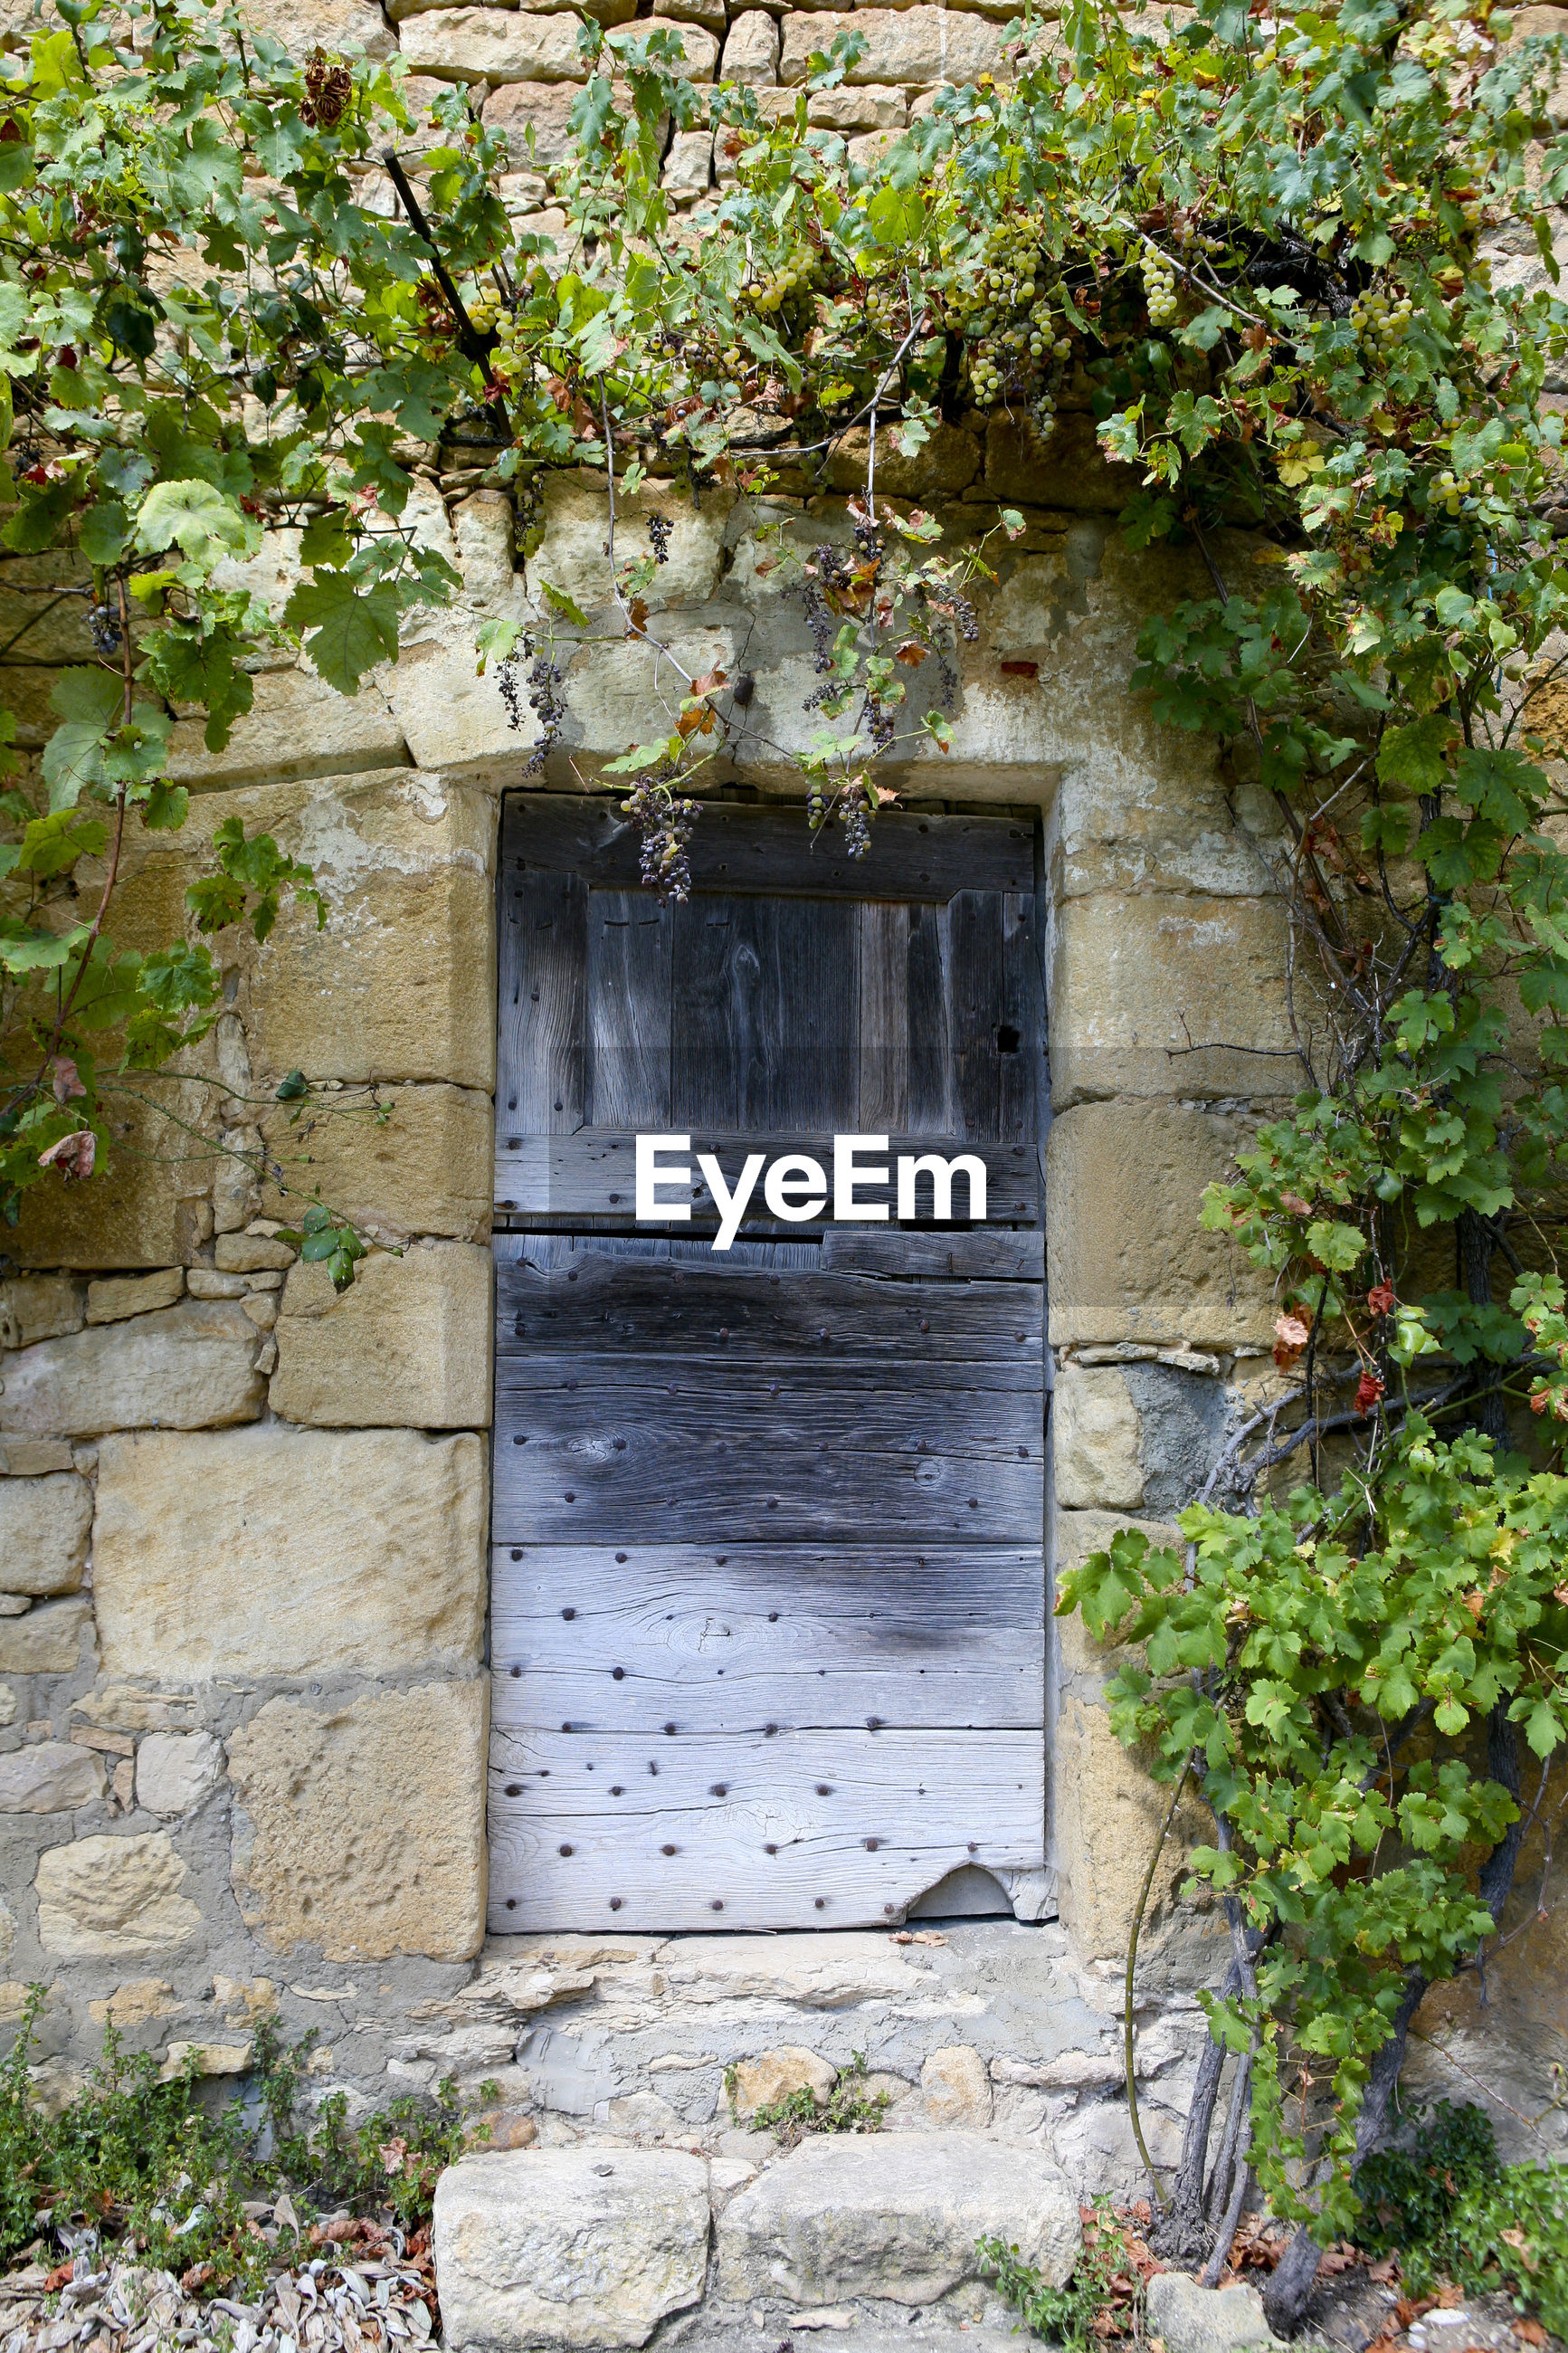 plant, architecture, built structure, entrance, growth, door, building, building exterior, no people, window, day, plant part, nature, leaf, house, outdoors, ivy, open, flower, wall